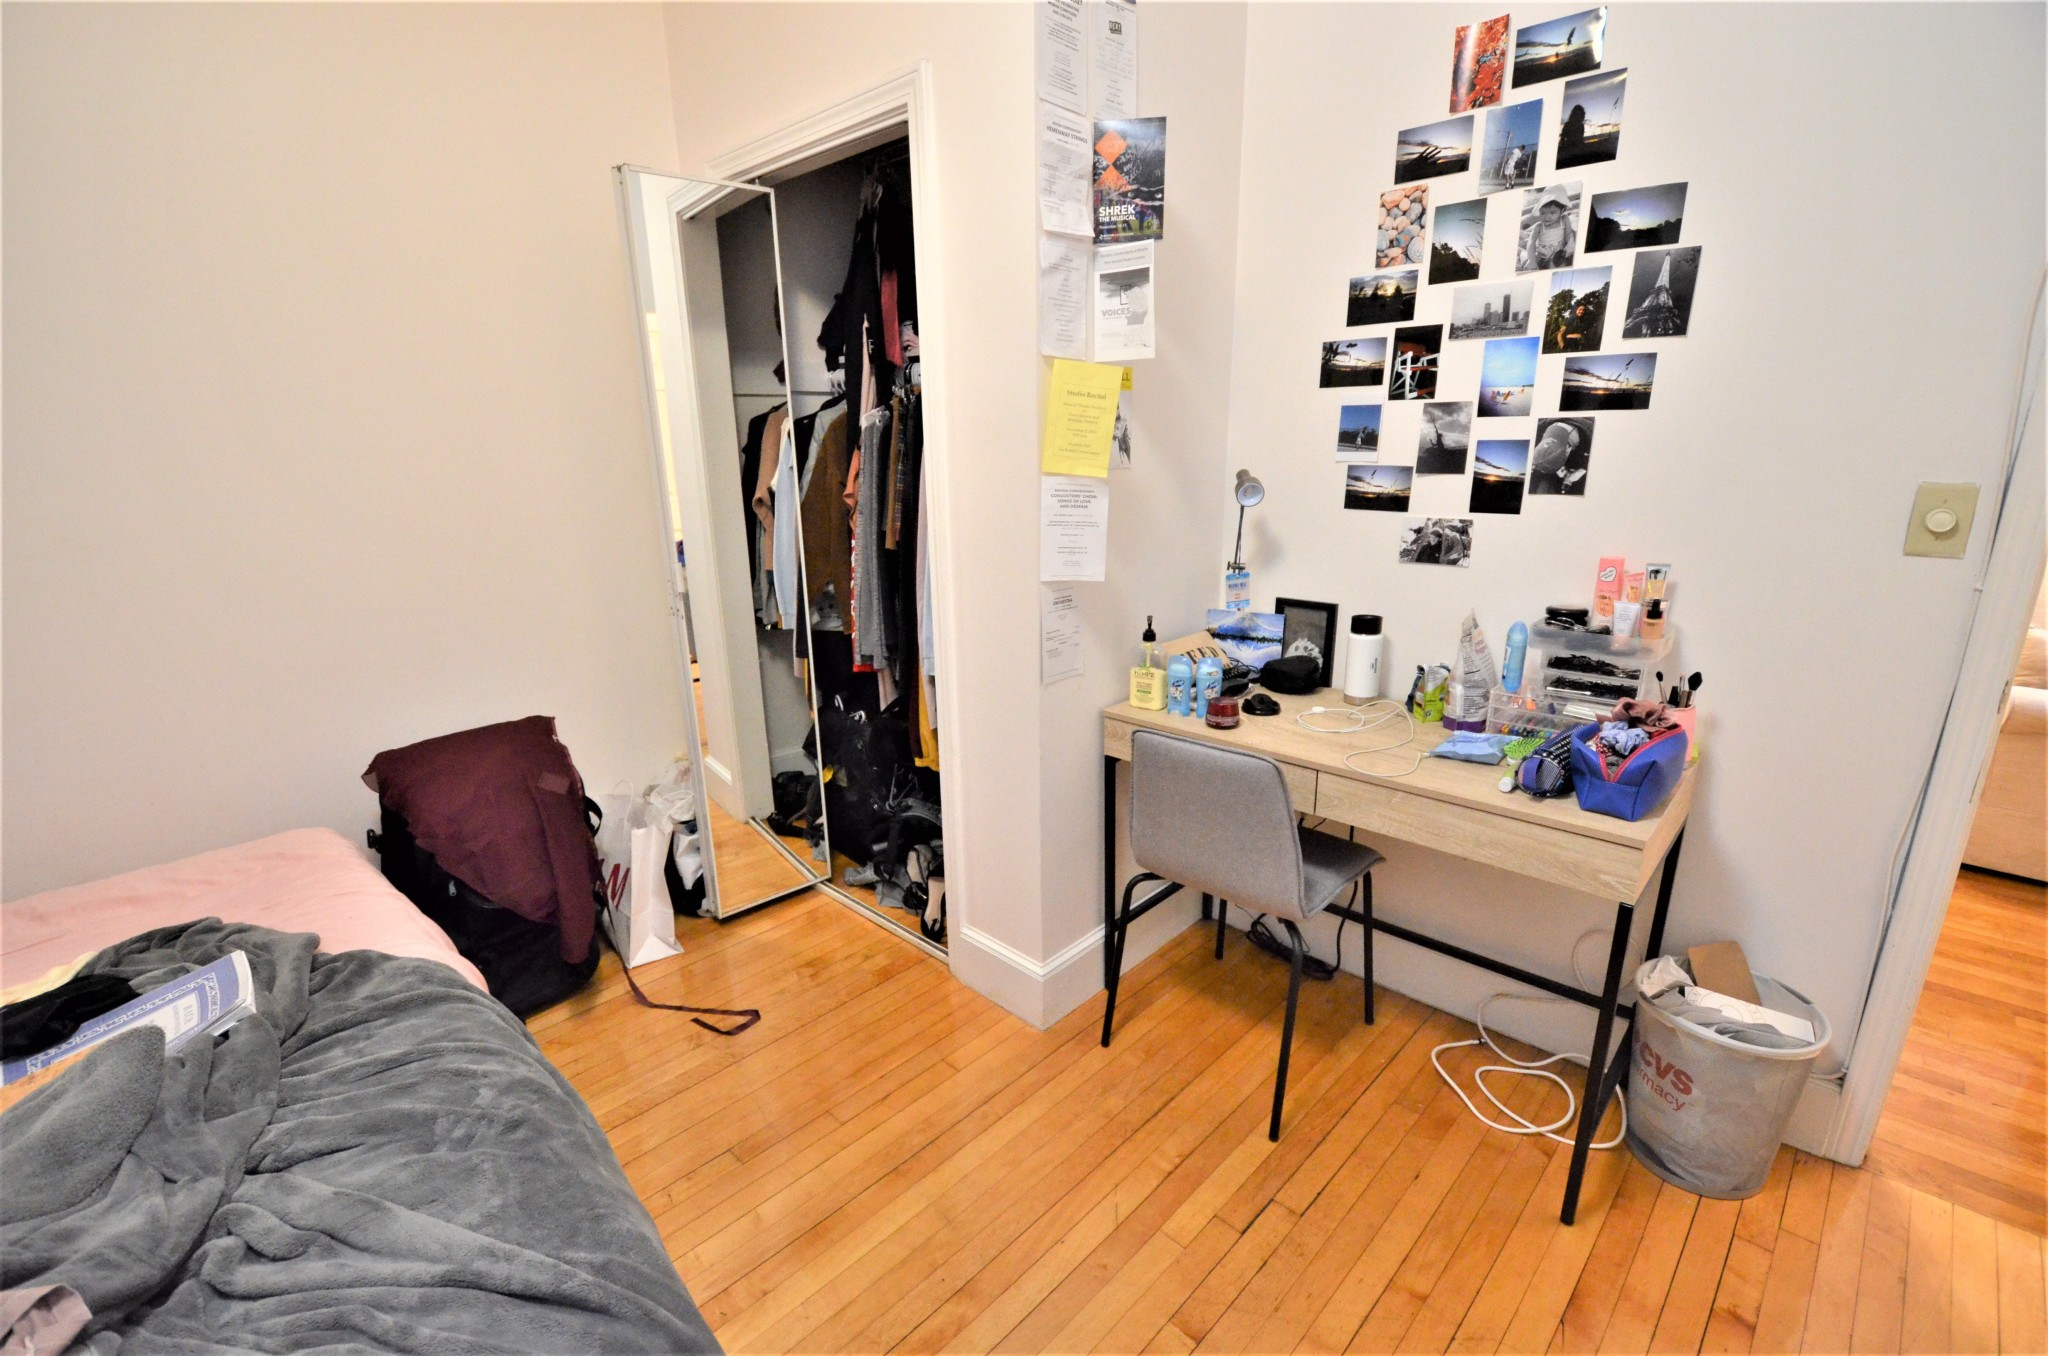 Avail 9/1 - Spacious Well lit Awesome 1 BR Split on Peterborough